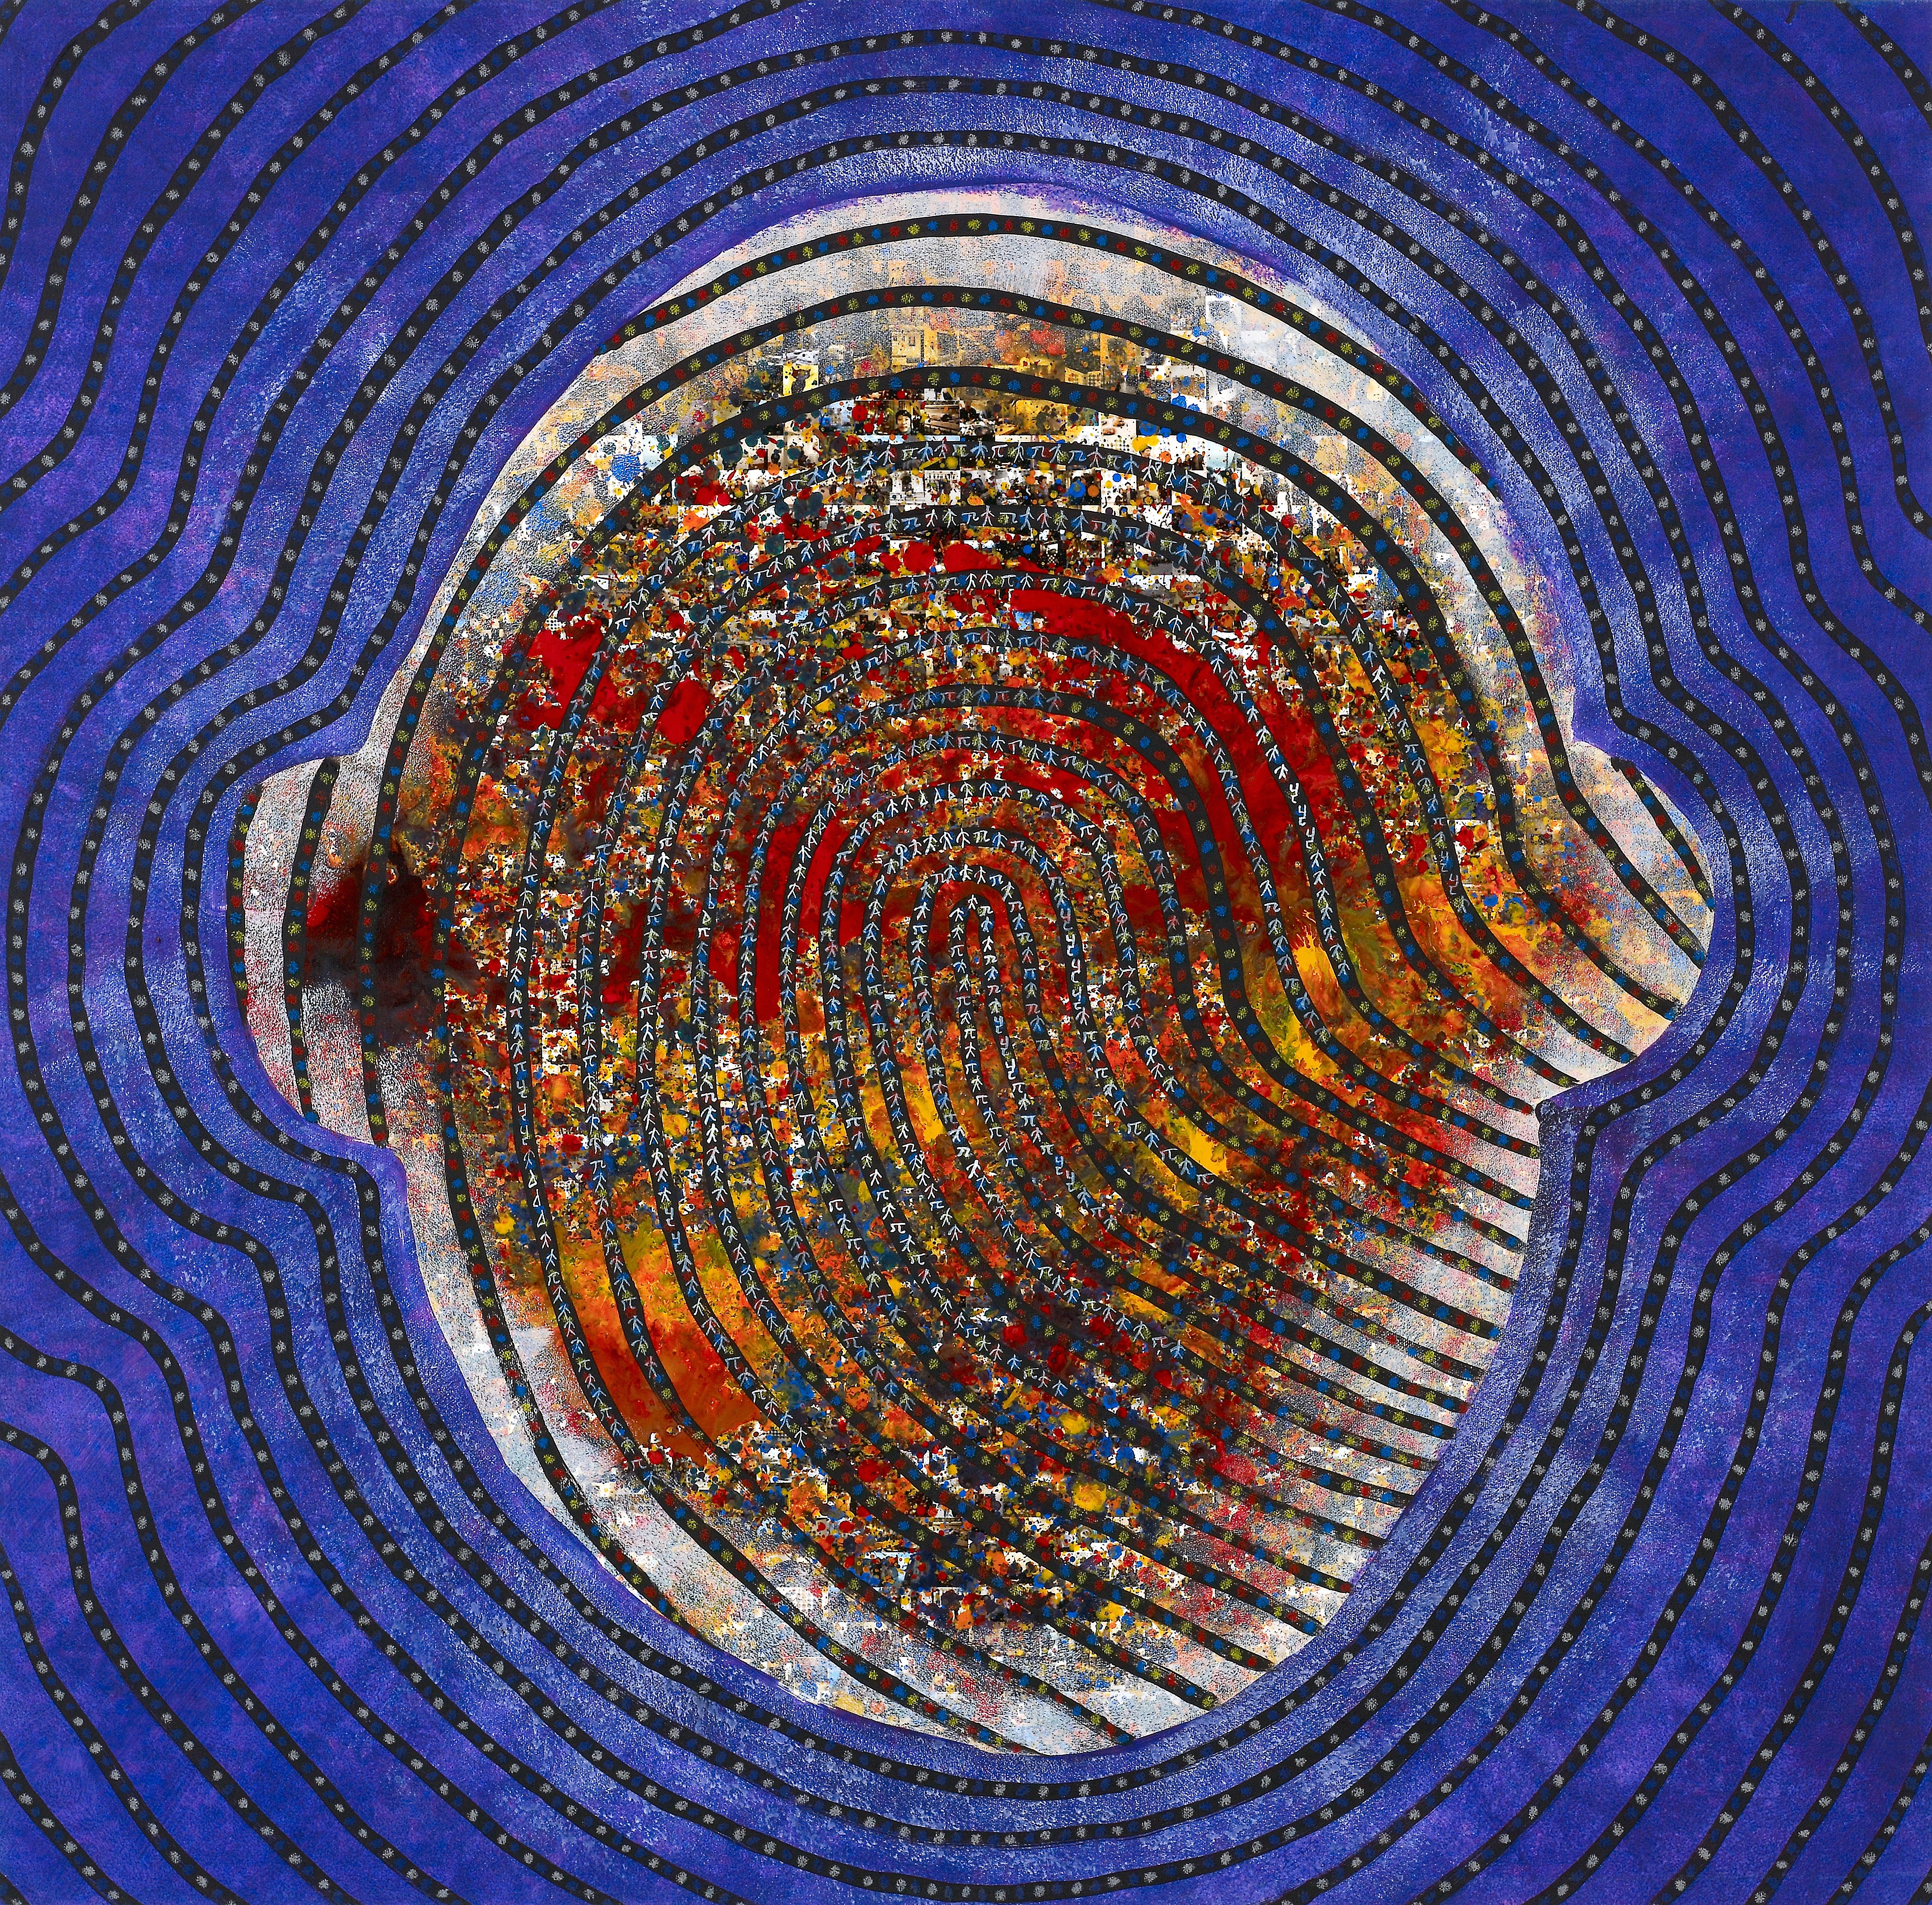 see the finger print see the perfection7 97.5 x 97.5cm Acrylic on digital printing 2016